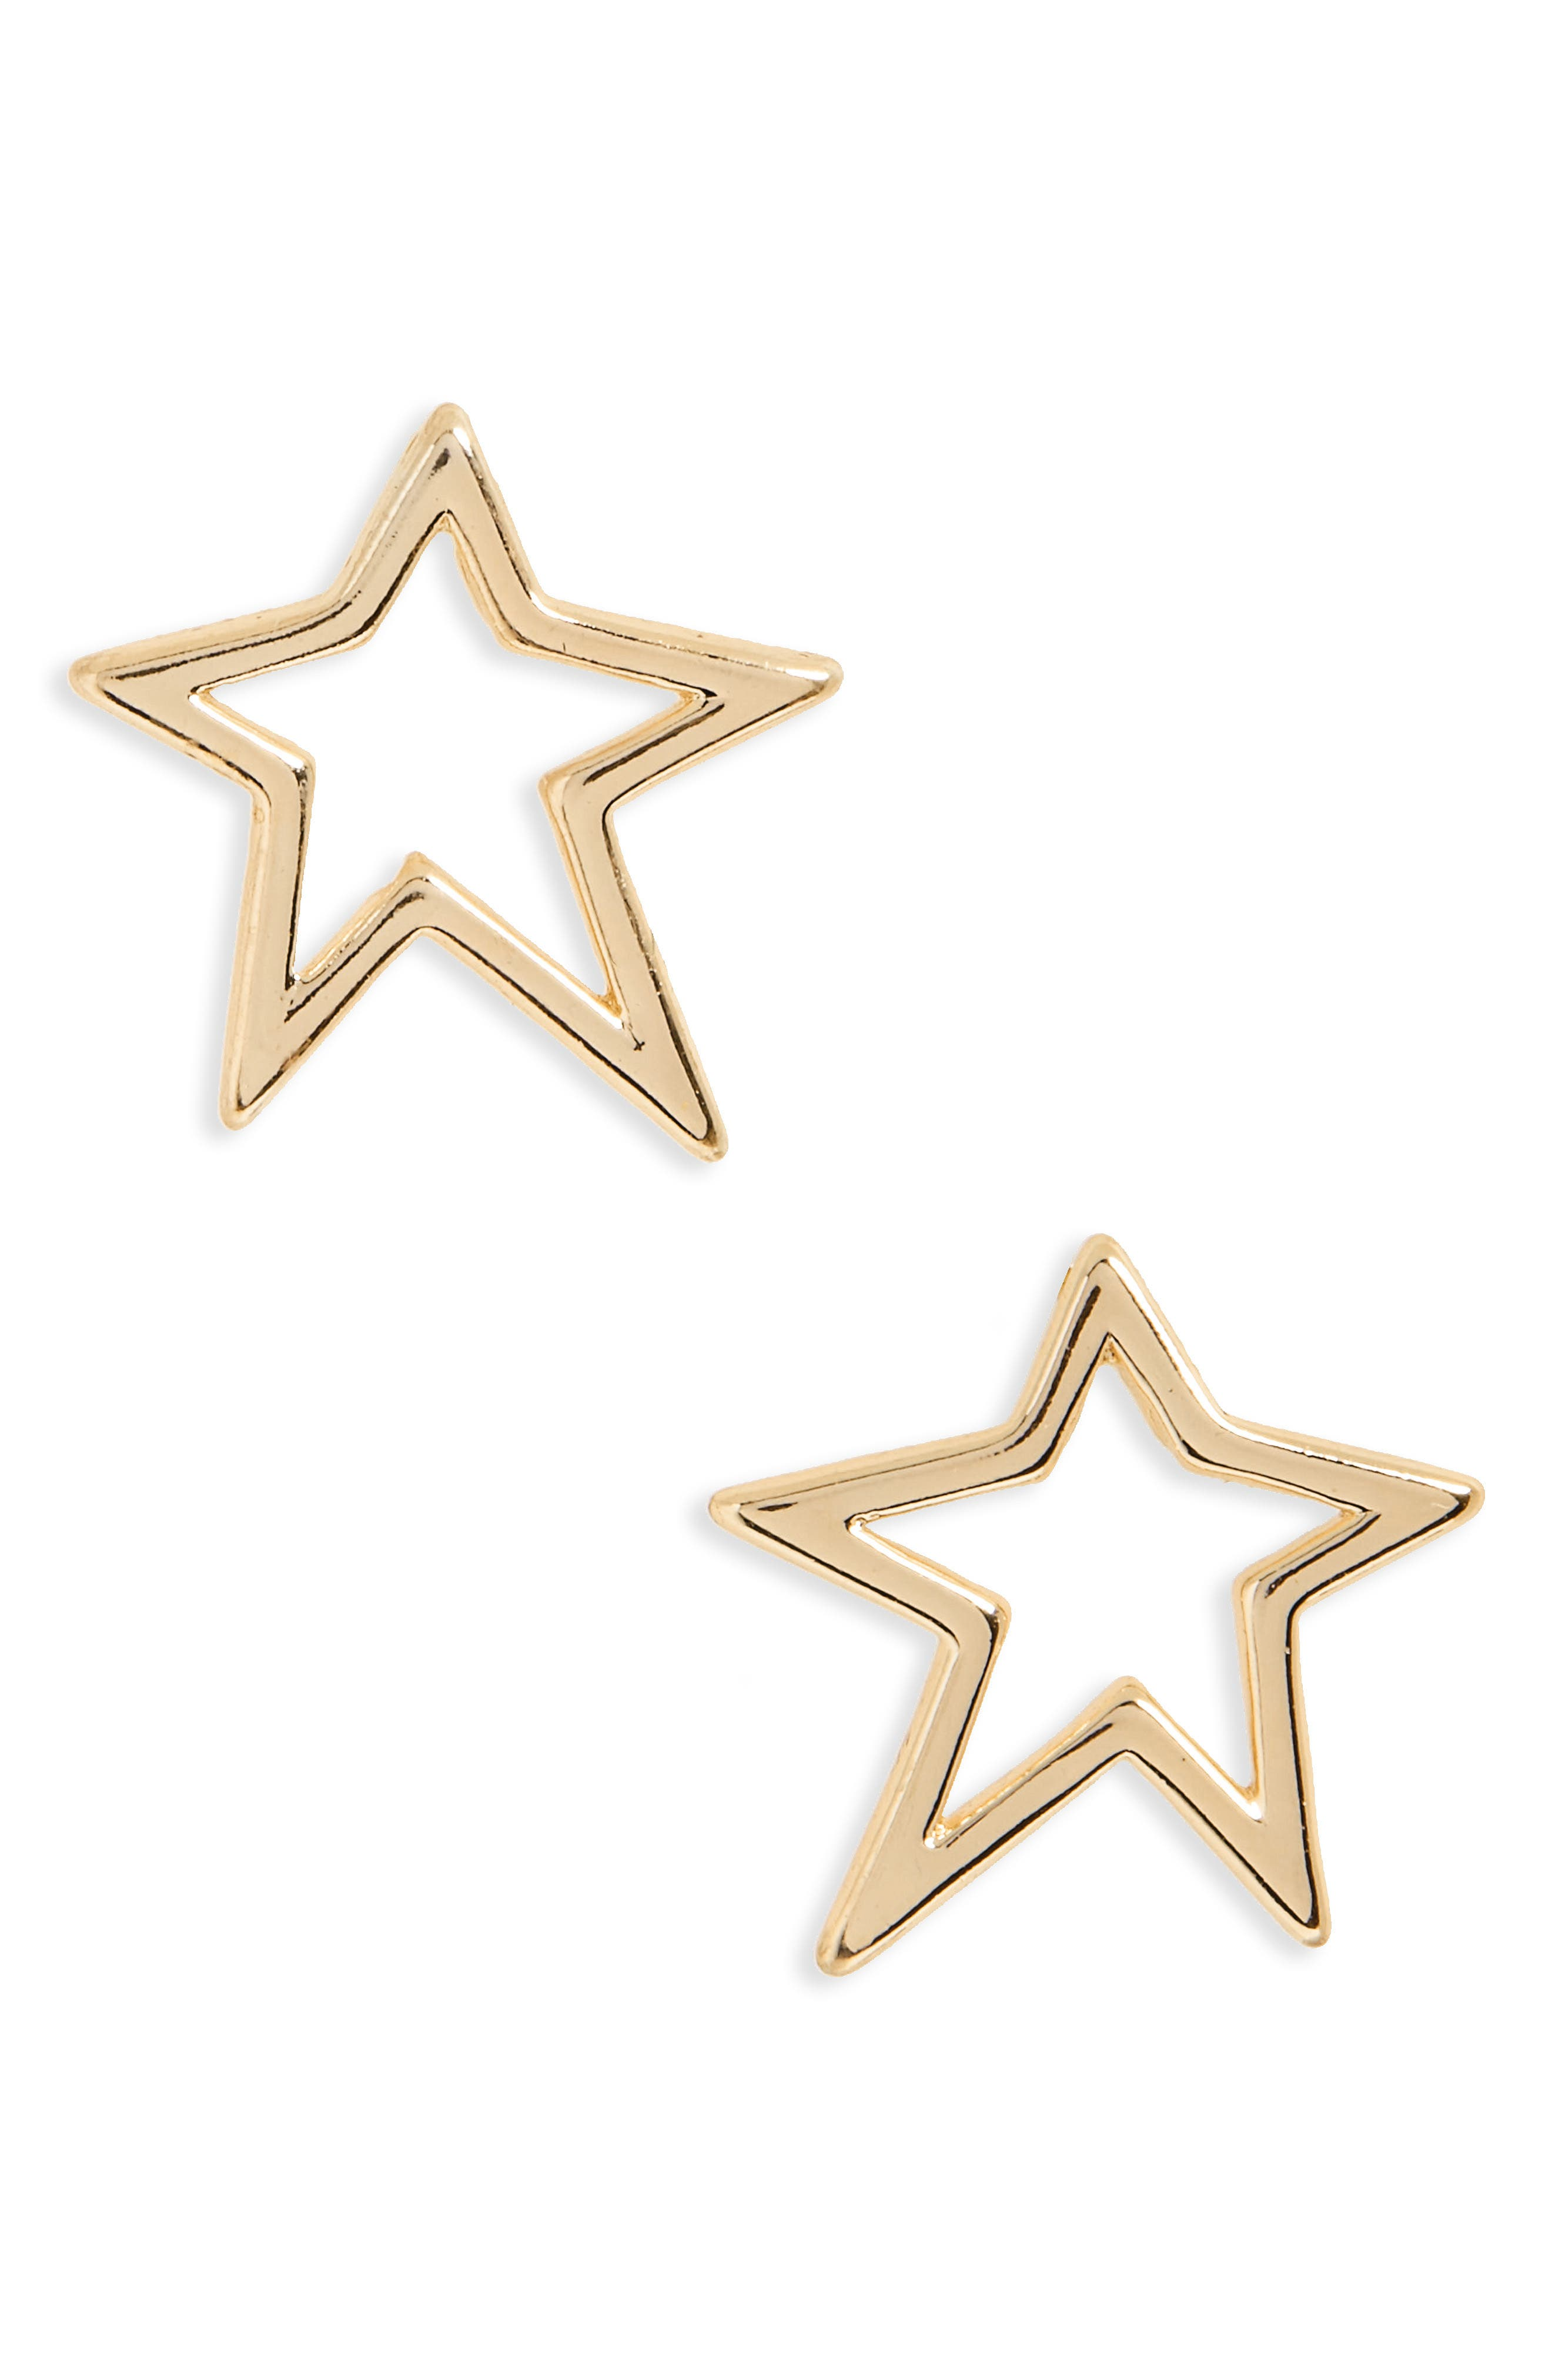 Star Stud Earrings,                         Main,                         color, Gold